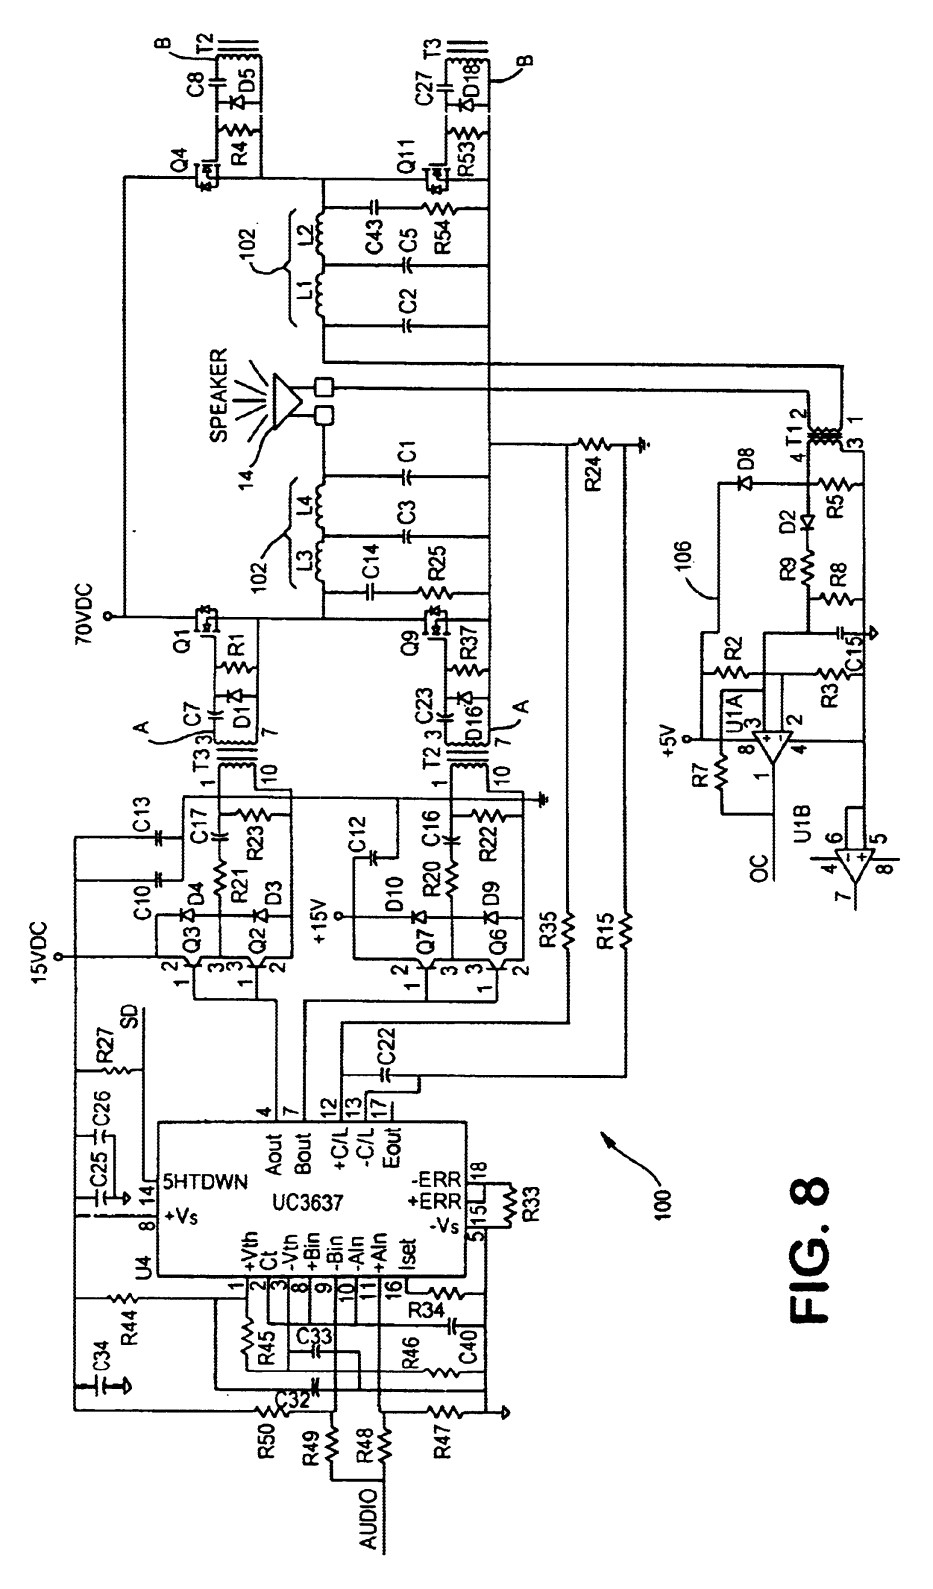 whelen 295sl100 wiring diagram Download-Labeled 295hfs2 whelen siren wiring diagram whelen 295 siren wiring diagram whelen hhs2200 remote siren wiring diagram whelen remote siren wiring 12-s